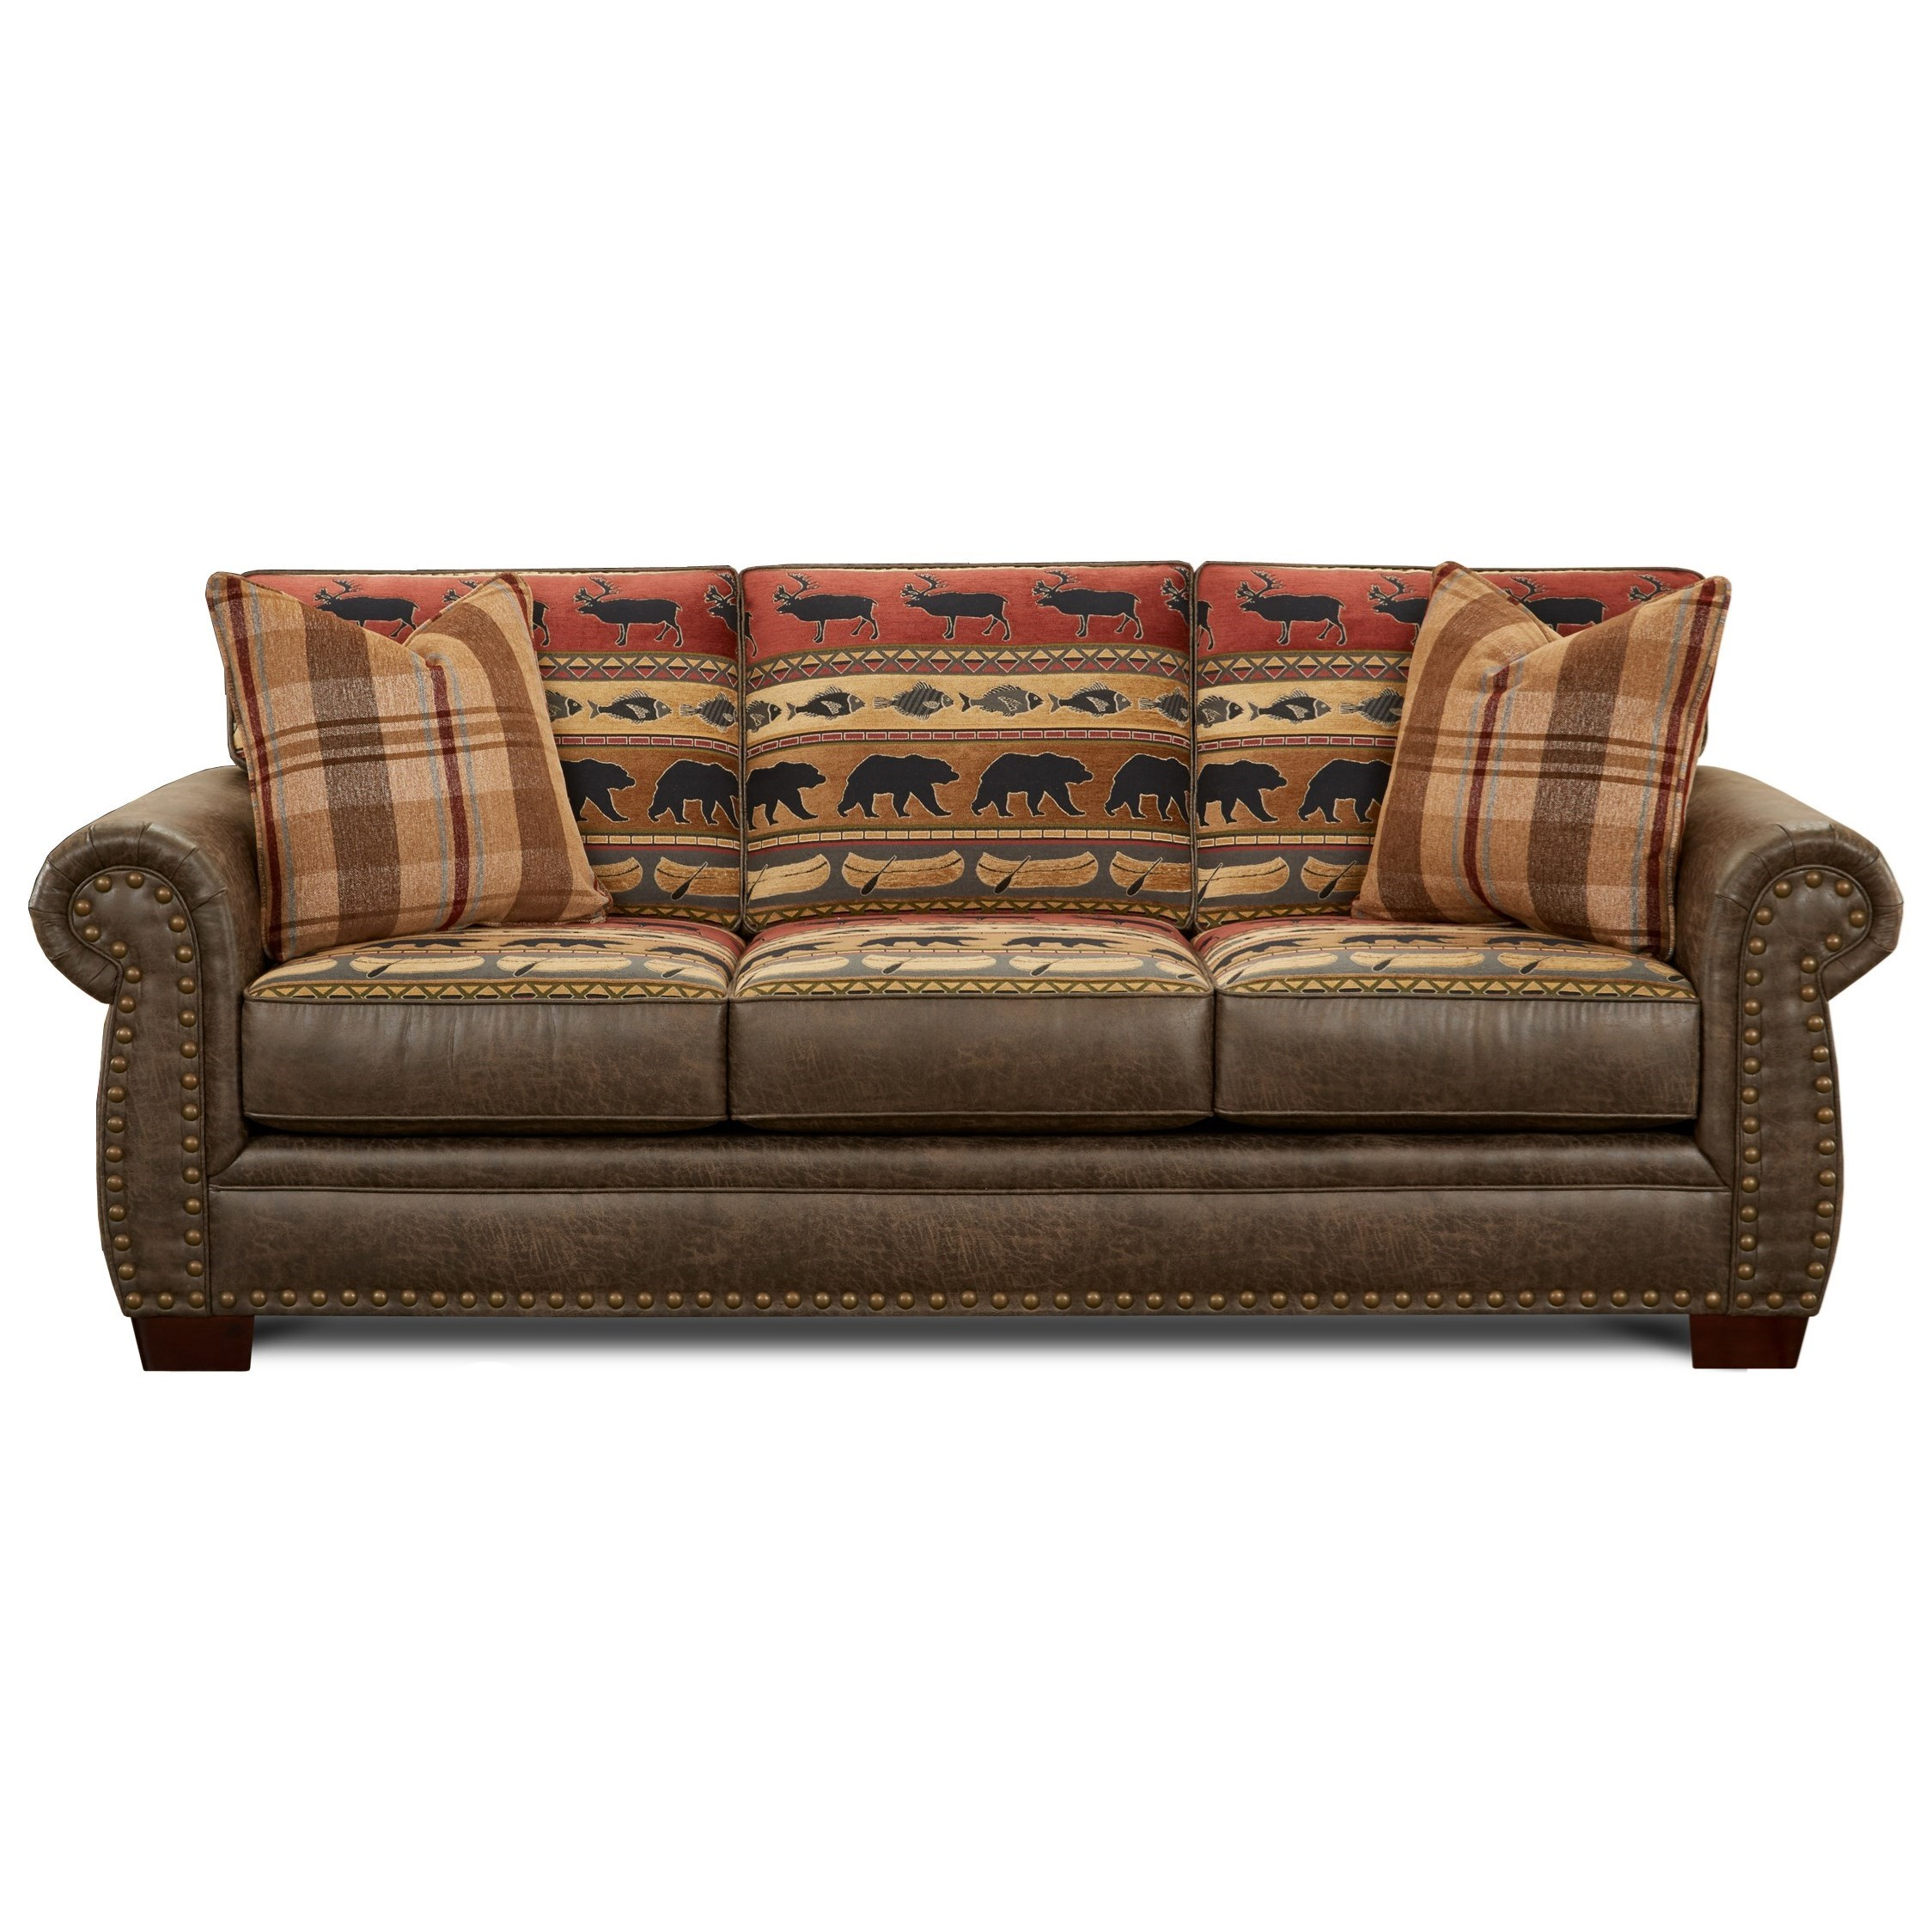 22-00 Sofa by Fusion Furniture at Miller Waldrop Furniture and Decor